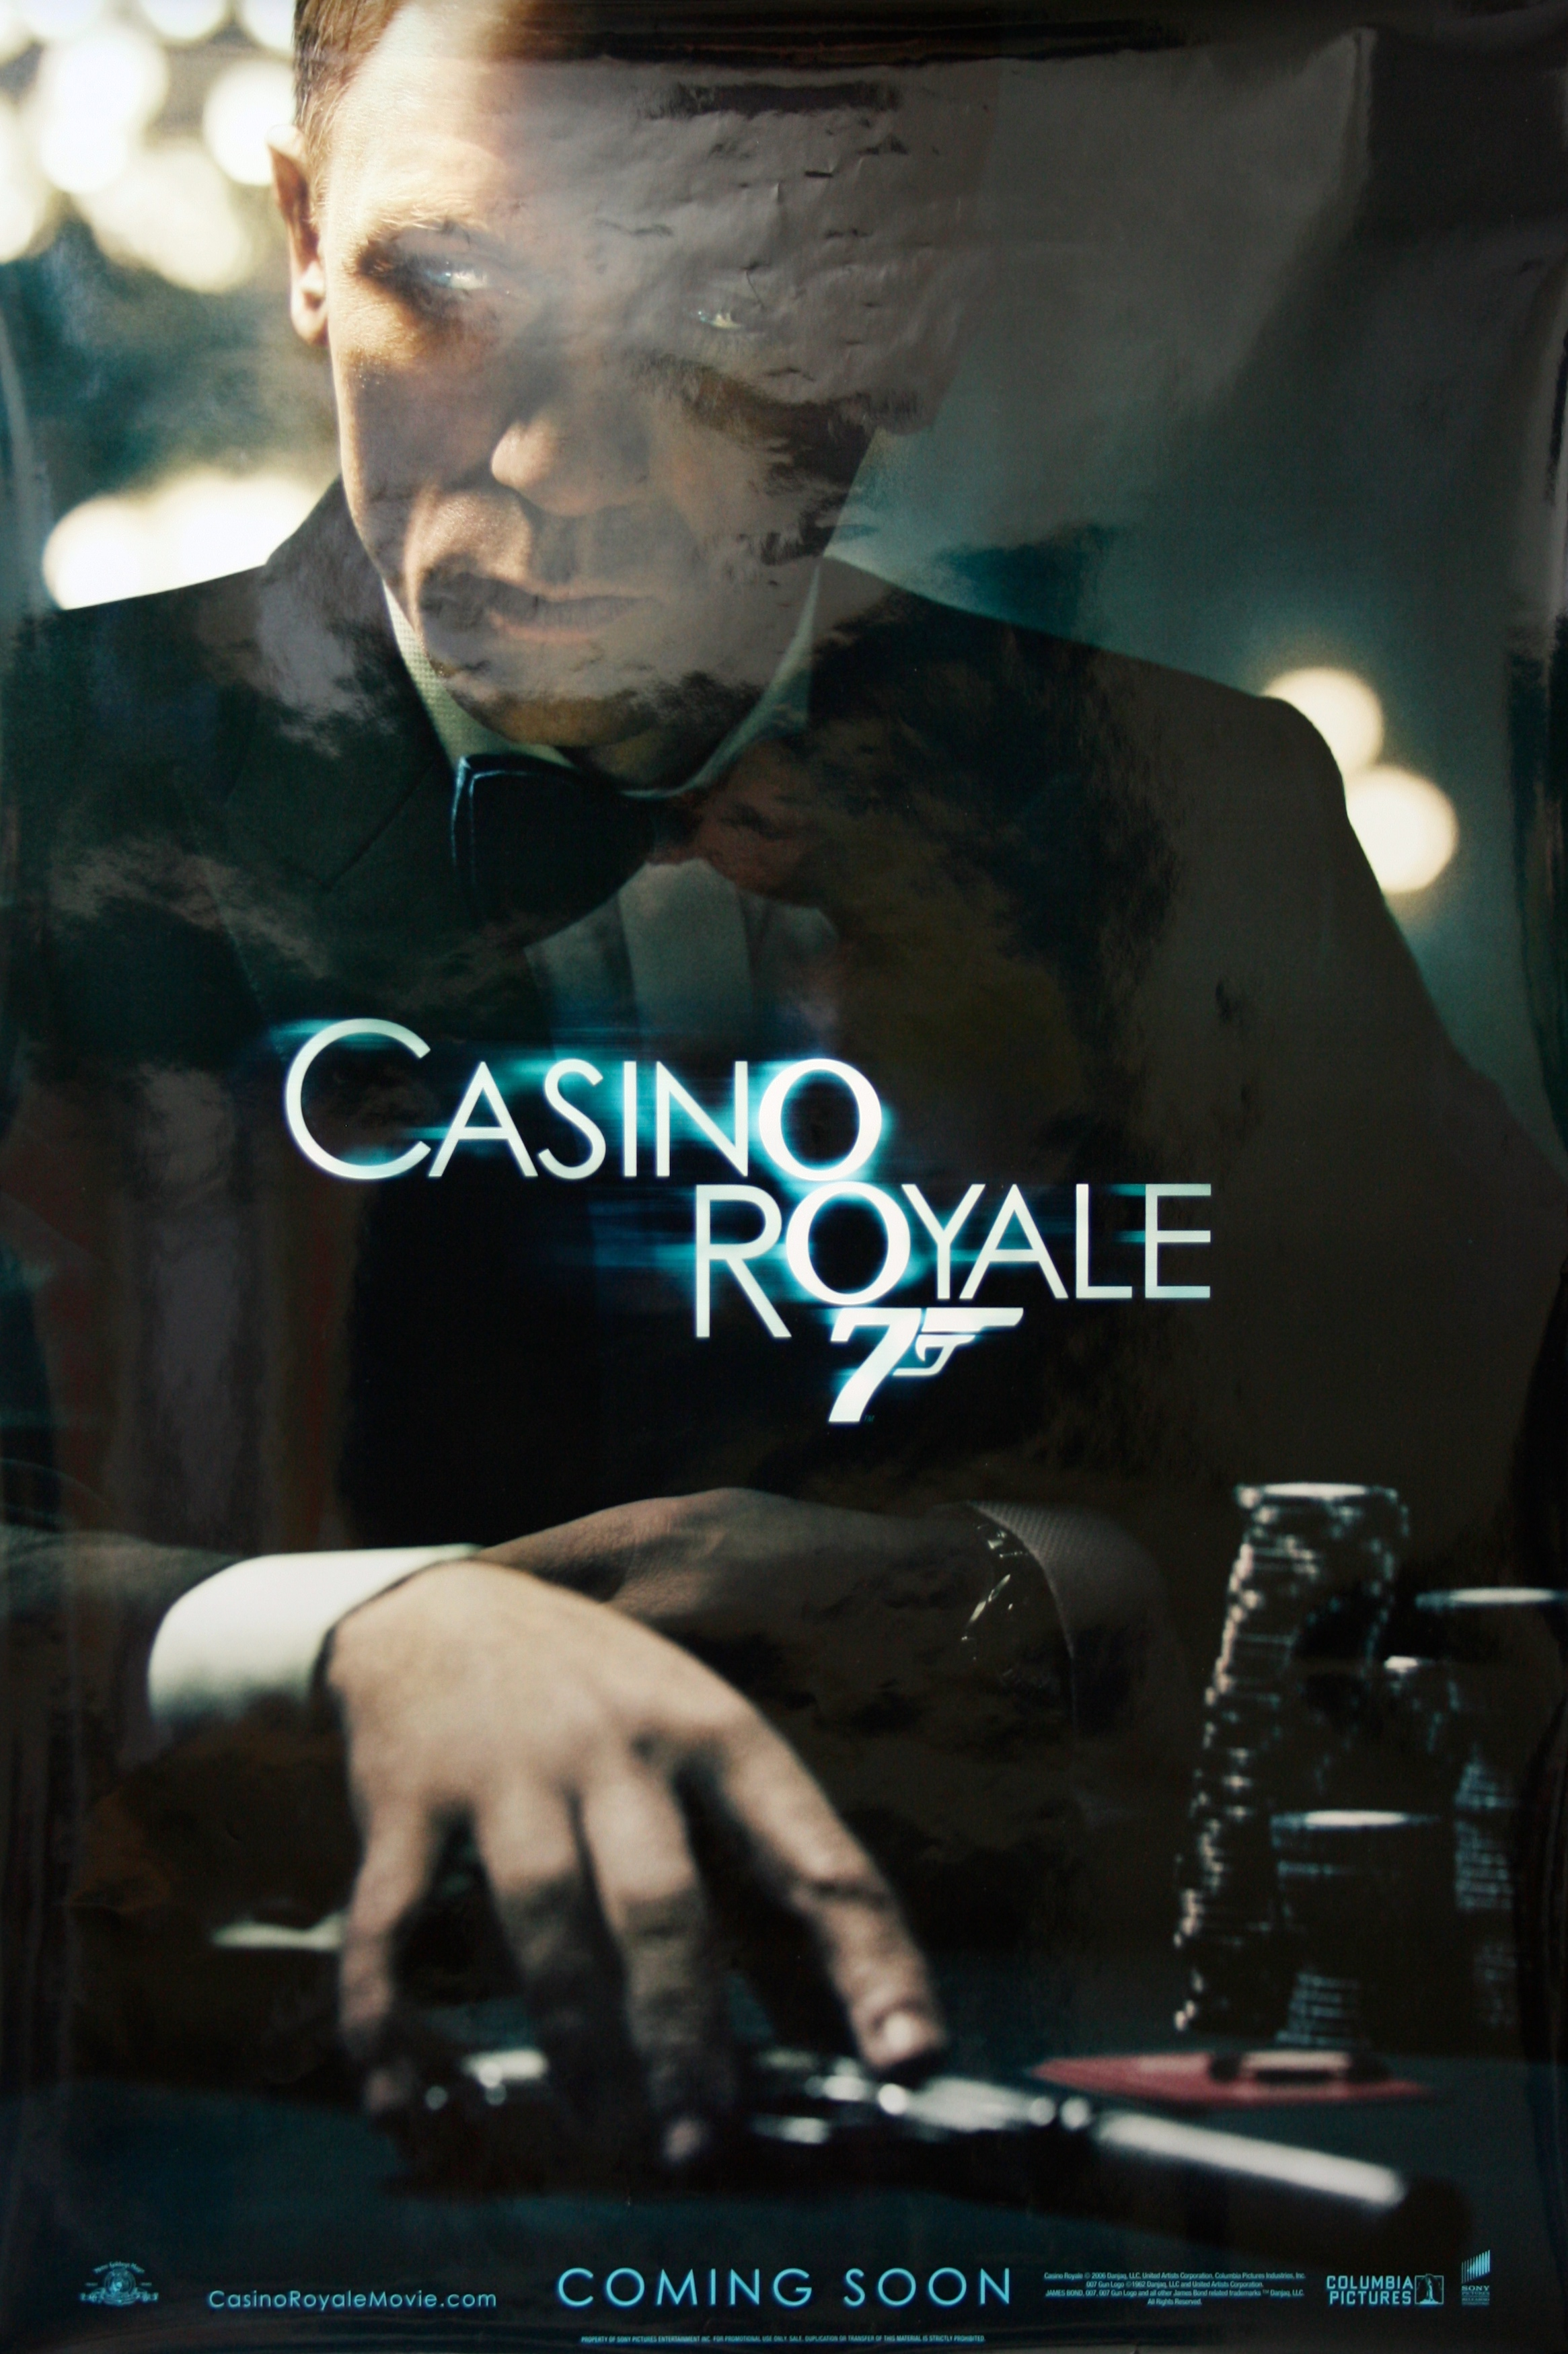 Casino download movie royal sterling casino lines